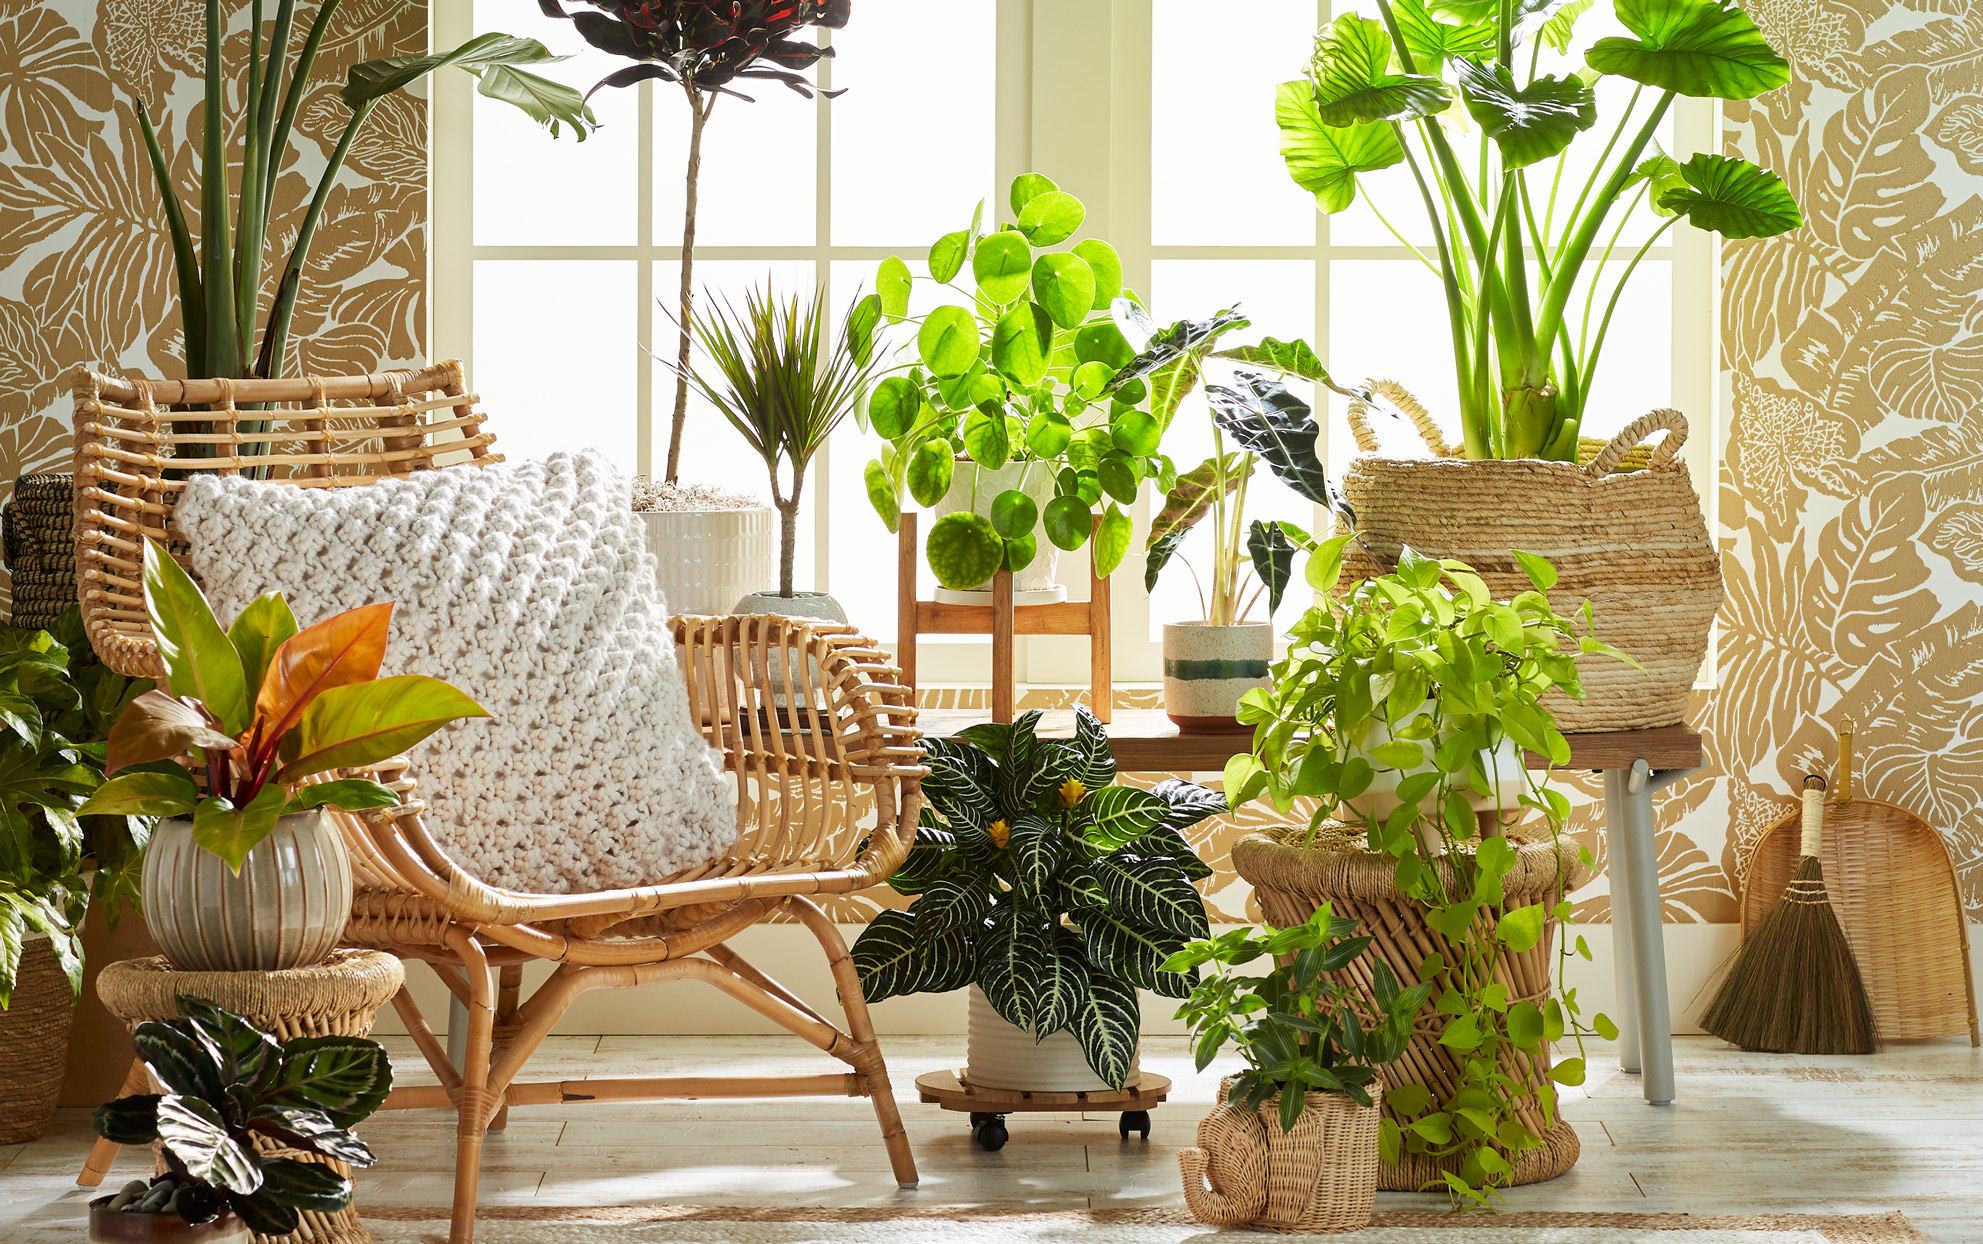 4 Gardening Trends You'll Want to Dig into in 2021